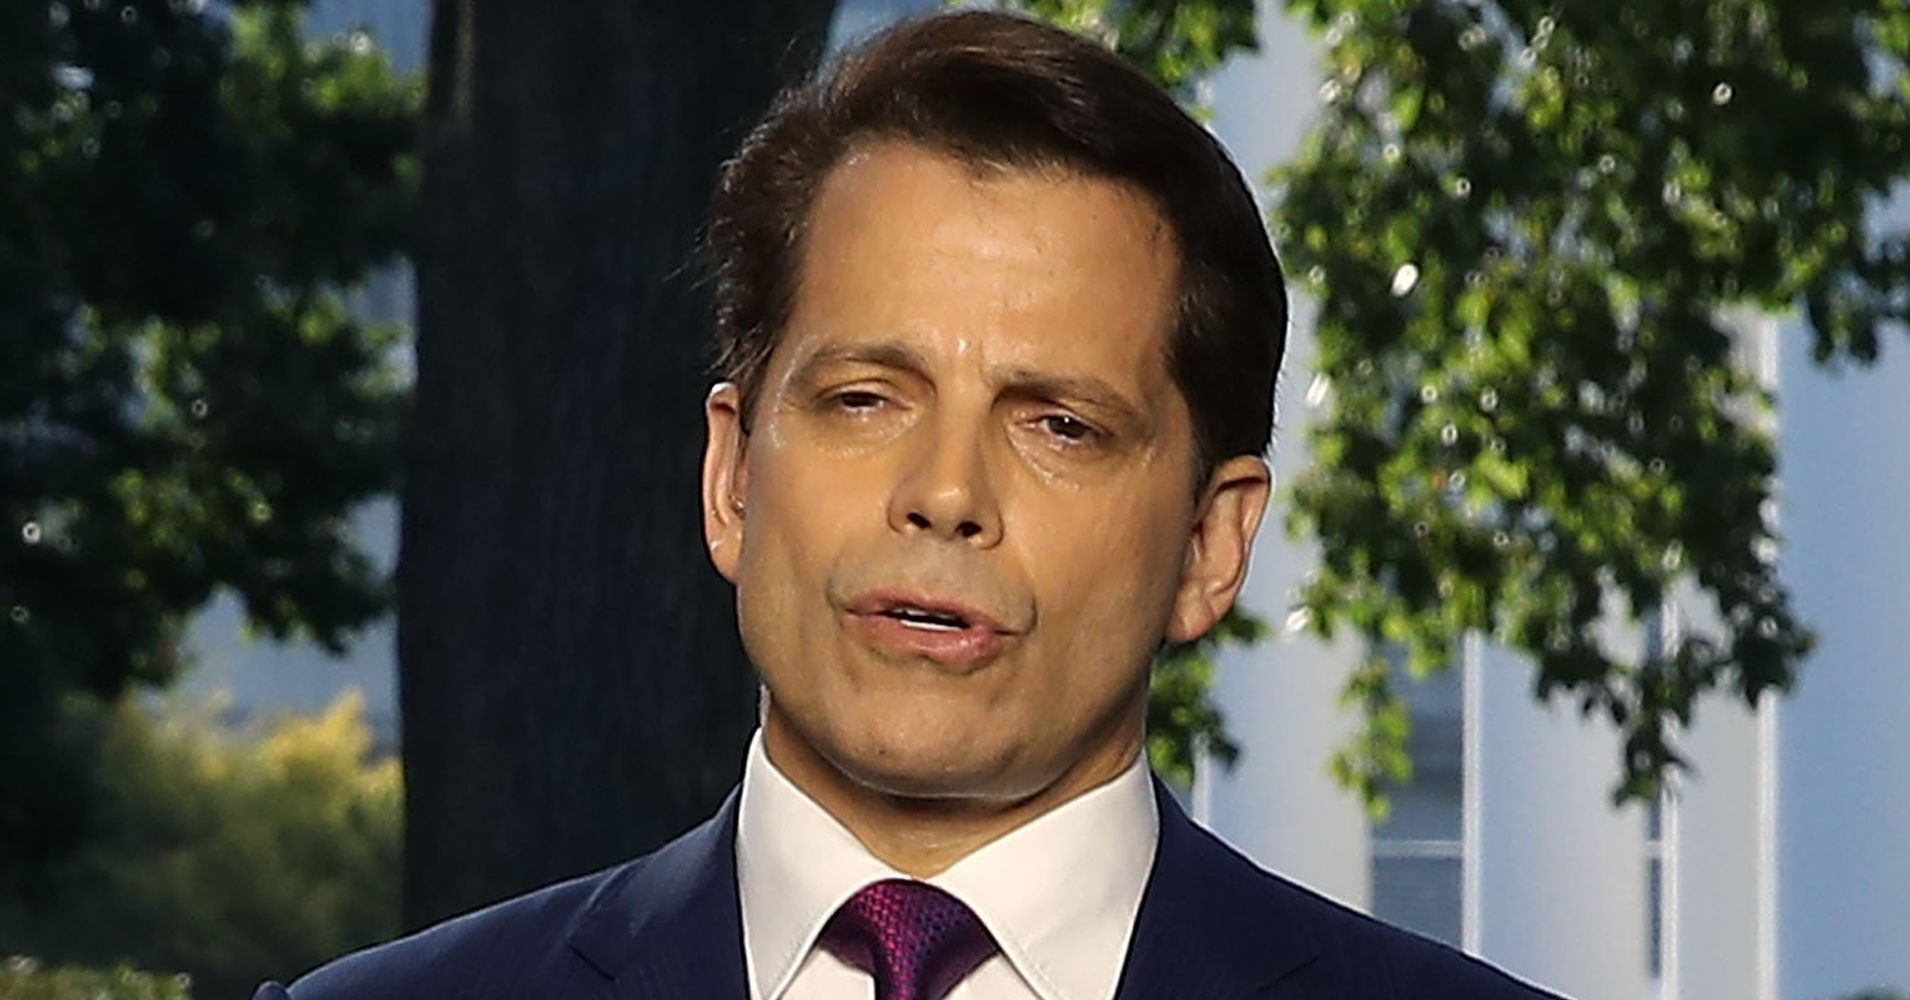 Why The Mooch Lost His Cool